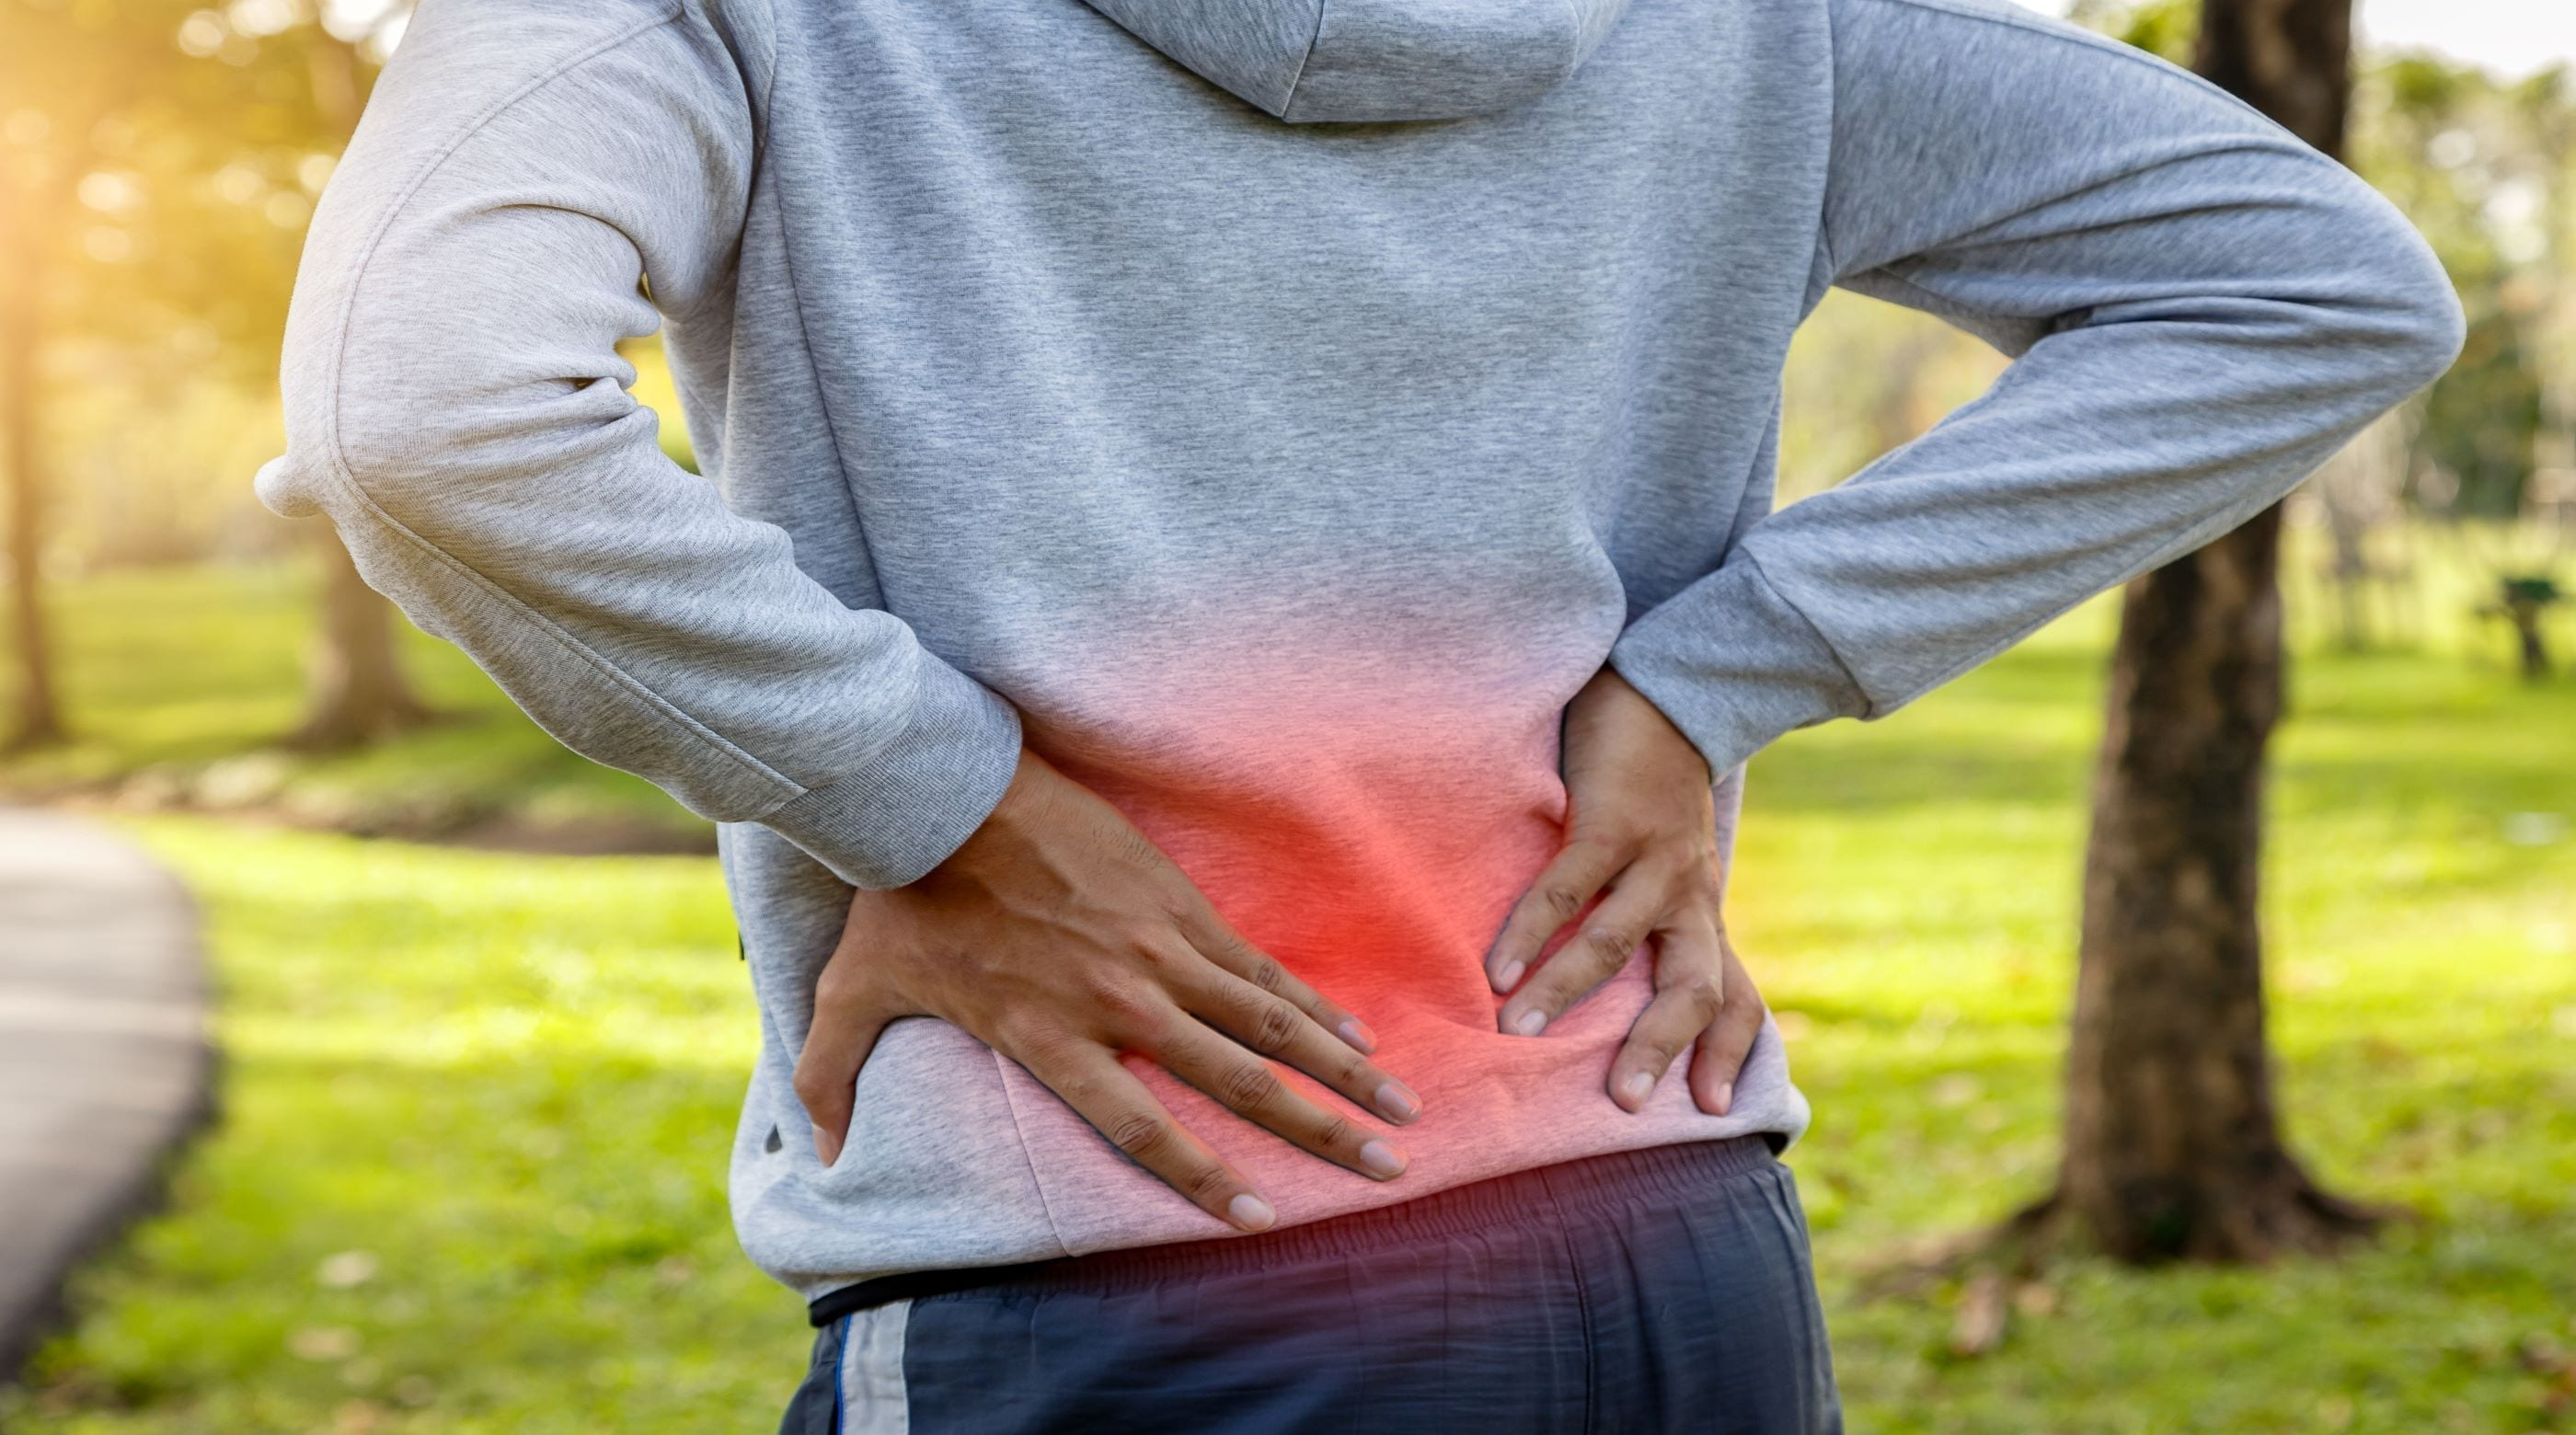 Part 1: Introduction to a Brain Based Approach to Low Back Pain